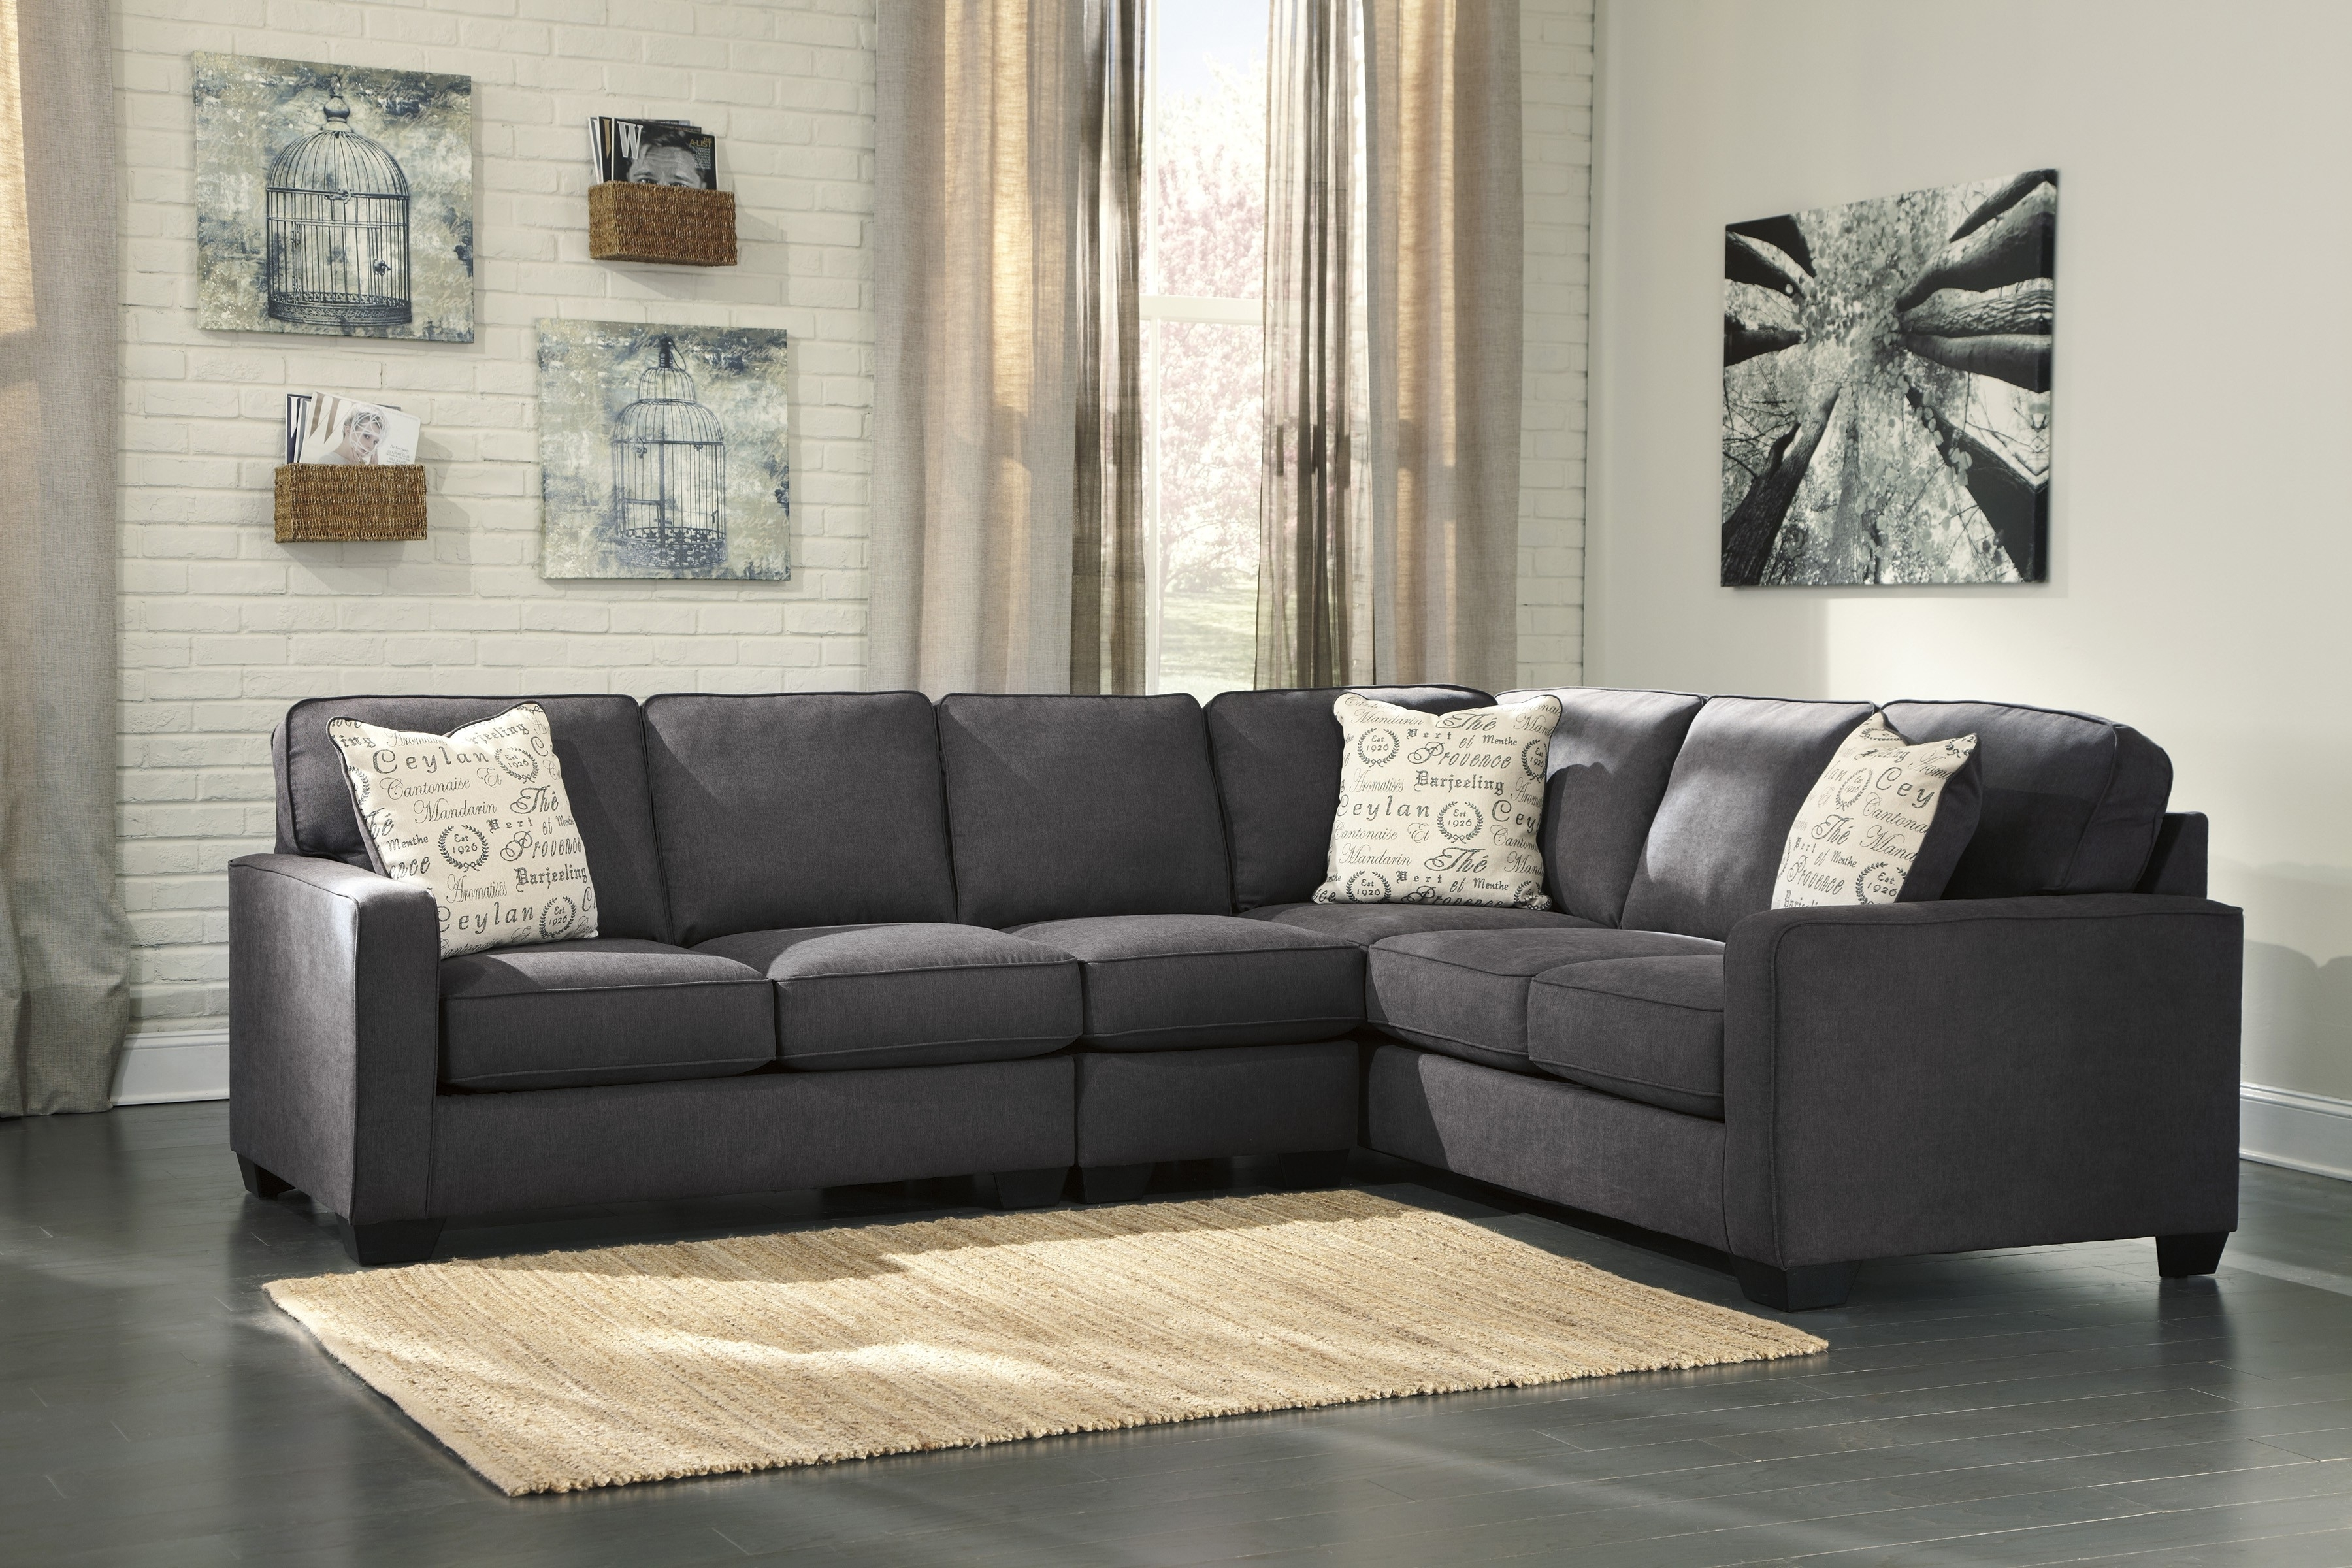 Best And Newest Sectional Sofas That Come In Pieces For Alenya Charcoal 3 Piece Sectional Sofa For $ (View 3 of 15)